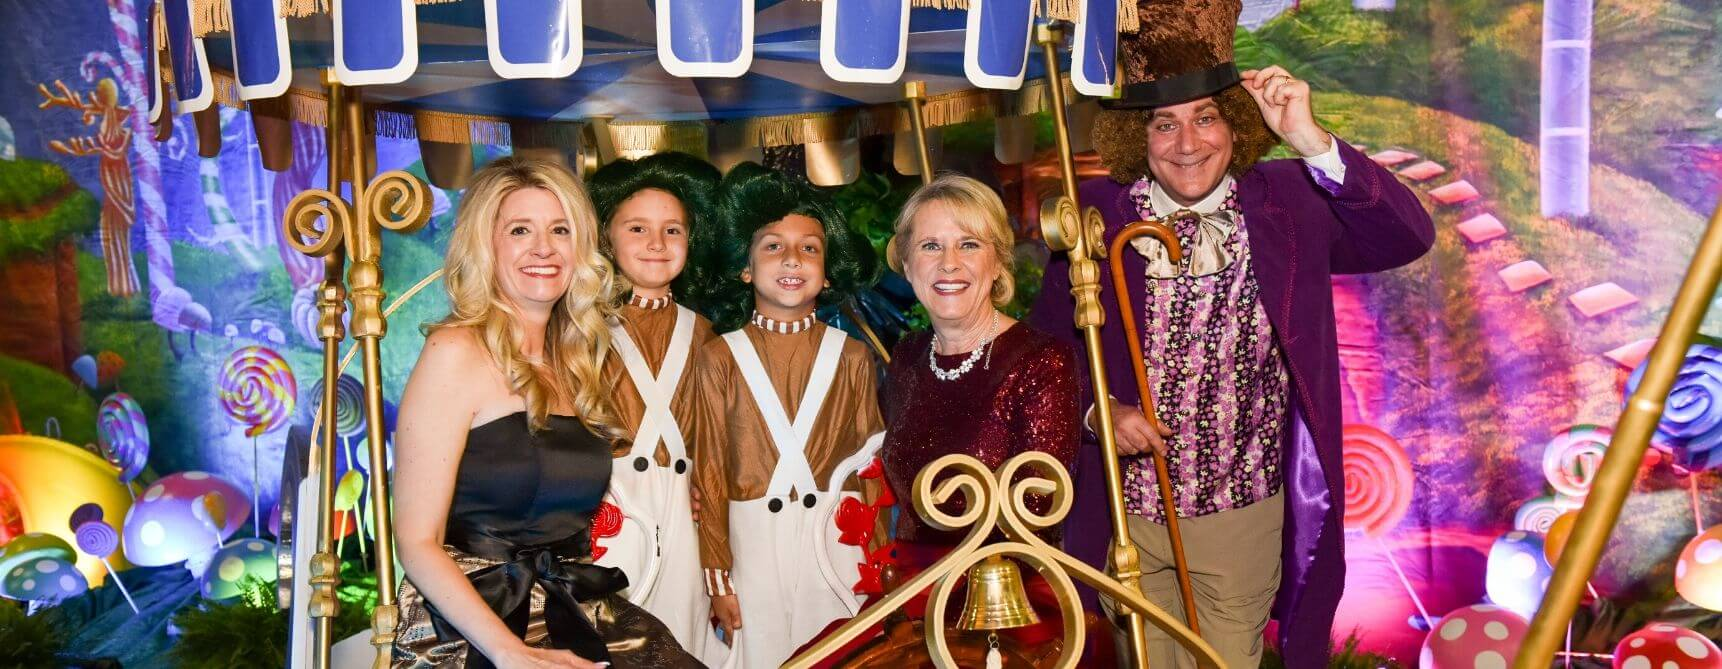 All Children's Hospital Willy Wonka Themed Event